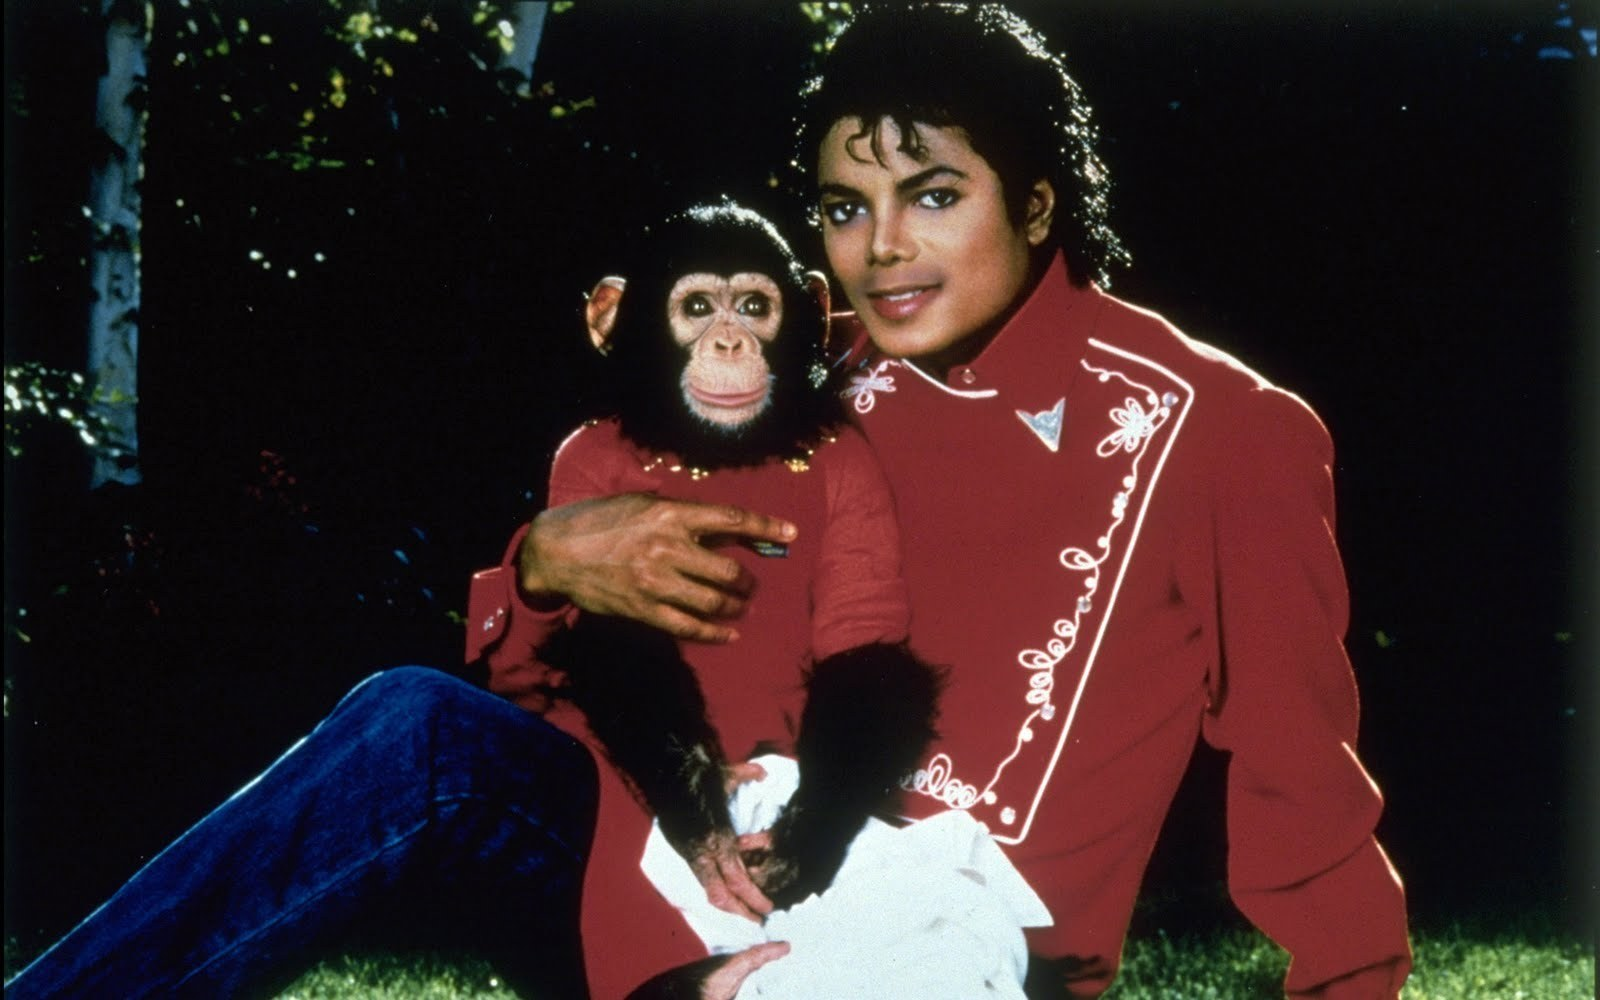 http://images2.fanpop.com/image/photos/12300000/-SWEET-MICHAEL-CUTE-BUBBLE-michael-jackson-12358799-1600-1000.jpg